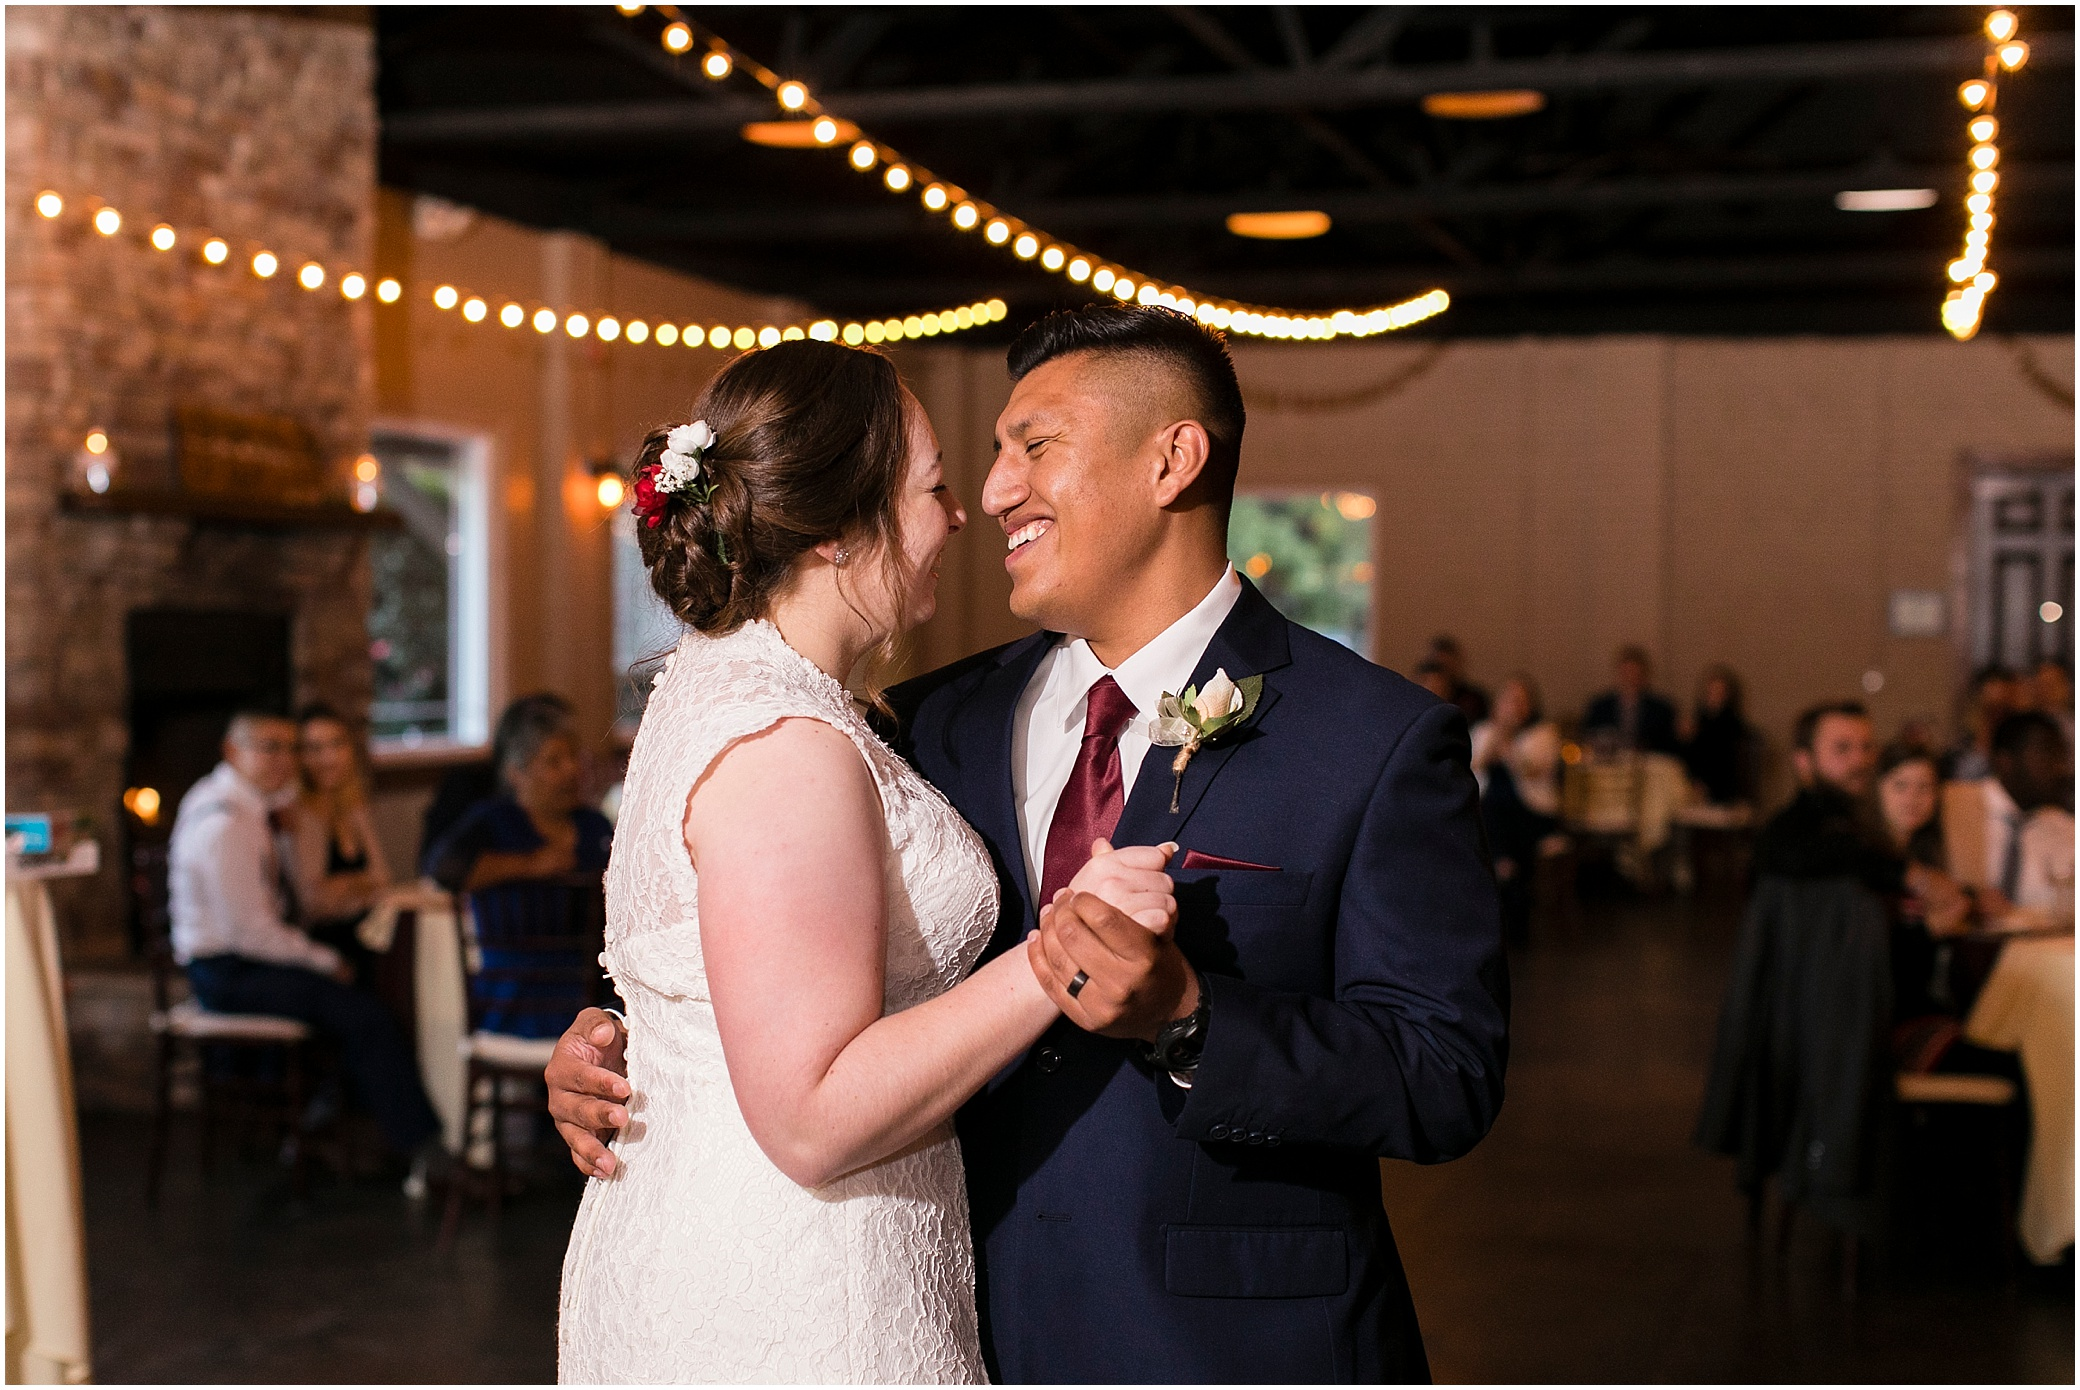 Fall wedding reception at the Larkin's Sawmill in Greenville, South Carolina, destination wedding photographer